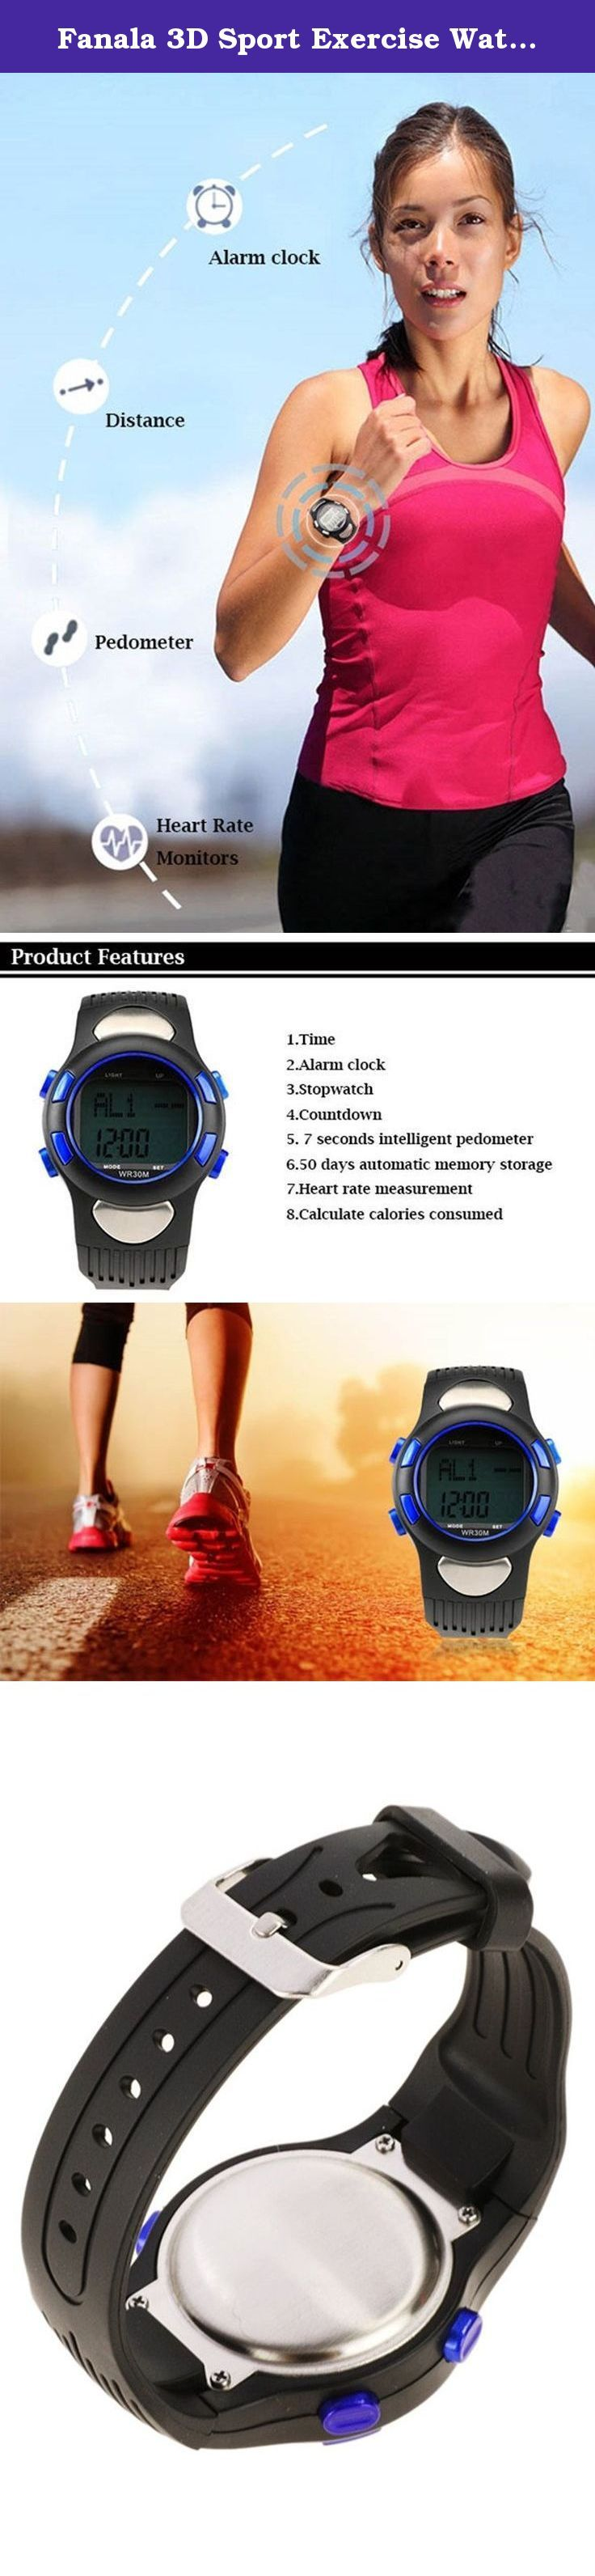 Fanala 3D Sport Exercise Watch Pulse Heart Rate Monitor Pedometer Calories Counter. Features: Dial material: Tempered Glass Shell Material: Metal, Plastic Band material: Rubber Color: Blue Type: Sport watch Shape: Round Display: Digital Gender: Unisex Feature: Easy to operate Design: Multifunctional design Age group of application: Adult Backlight: EL or LED LCD display time and date Heart rate measuring range: 30 to 200 50 days automatic memory storage step function Modes: Time mode…